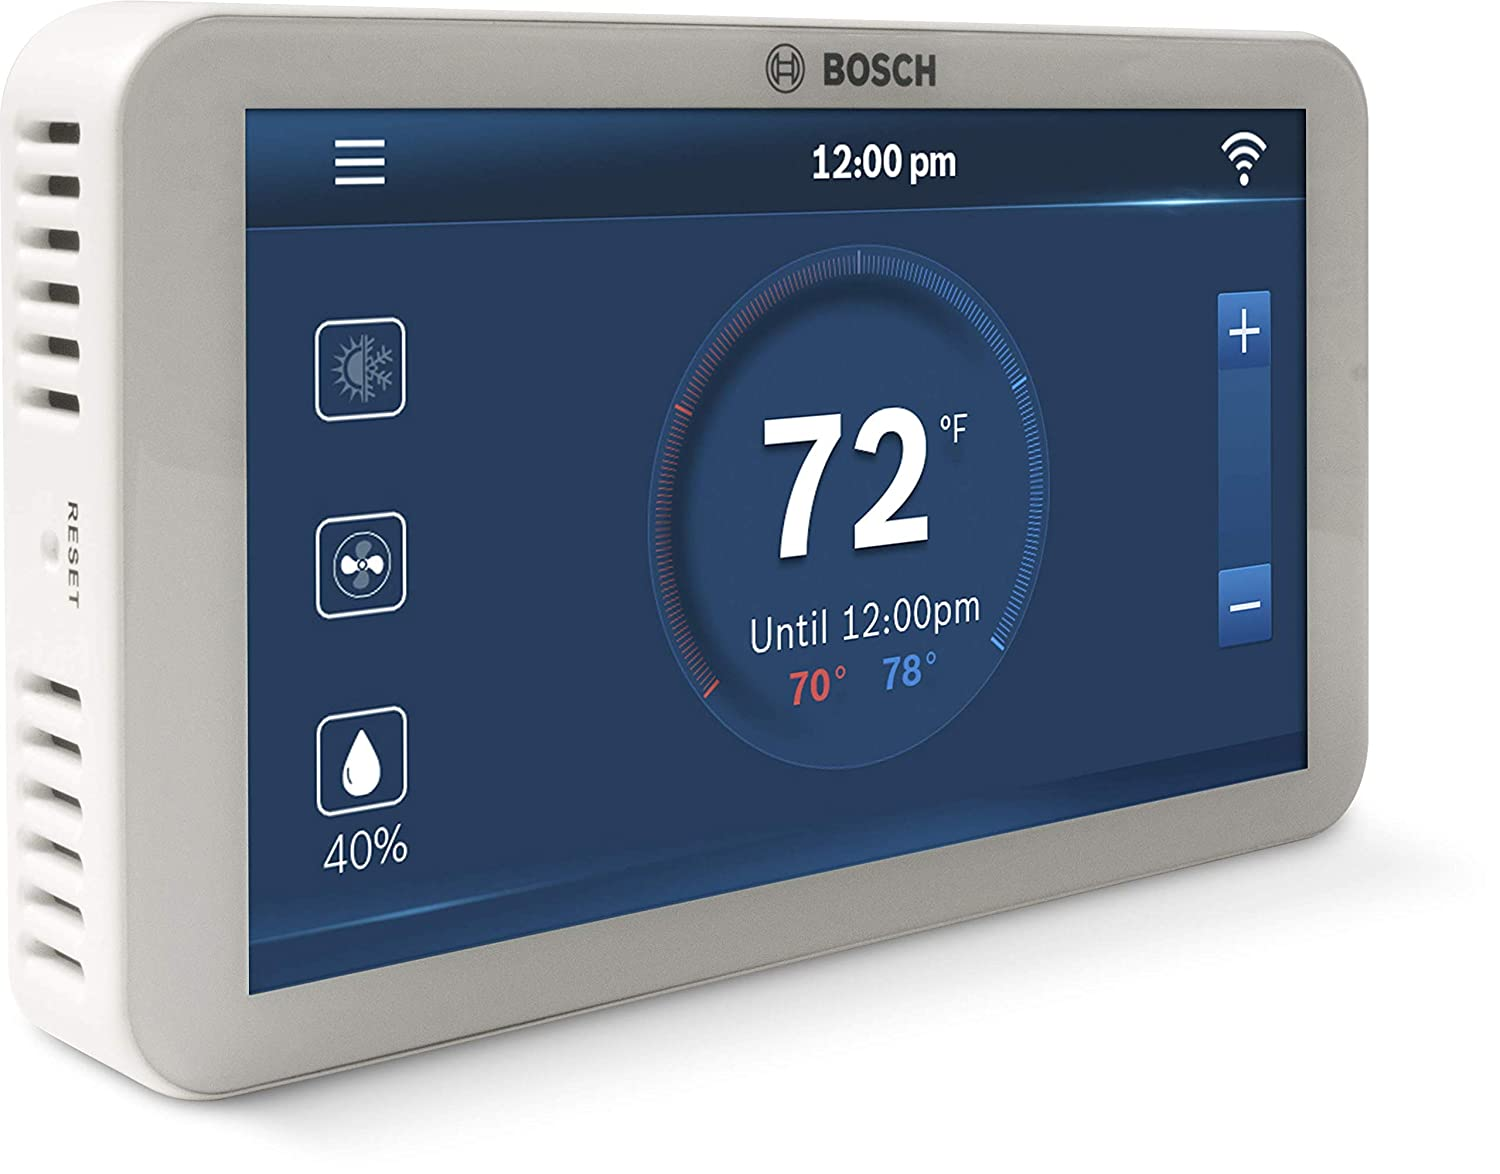 Bosch BCC100 Connected Control Smart Phone Wi-Fi Thermostat - Compatible  with Alexa - Touch Screen - - Amazon.com